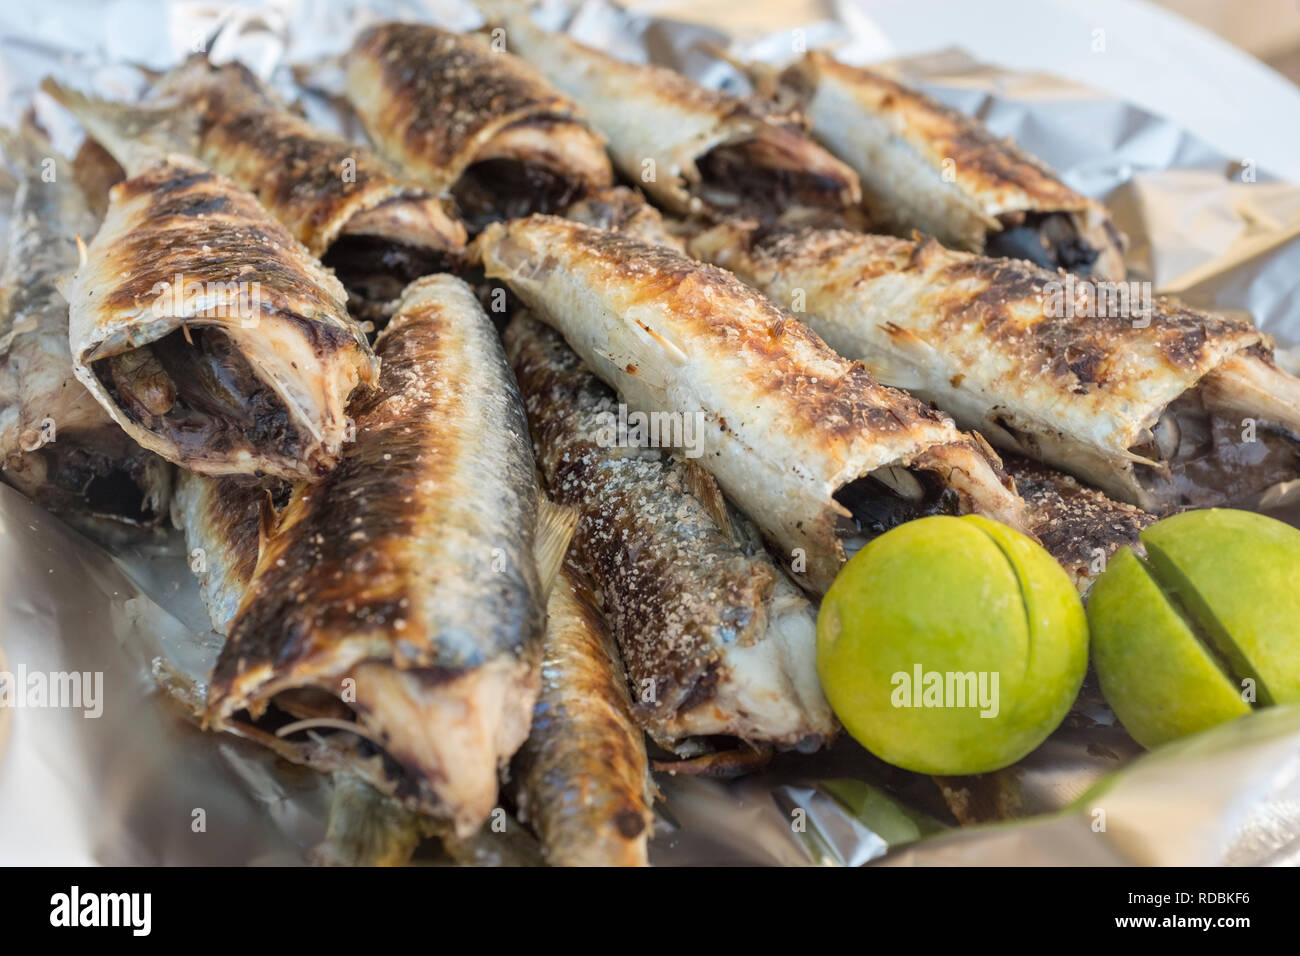 Freshly grilled sardines in a fish souk, or market, in Salalah, Oman